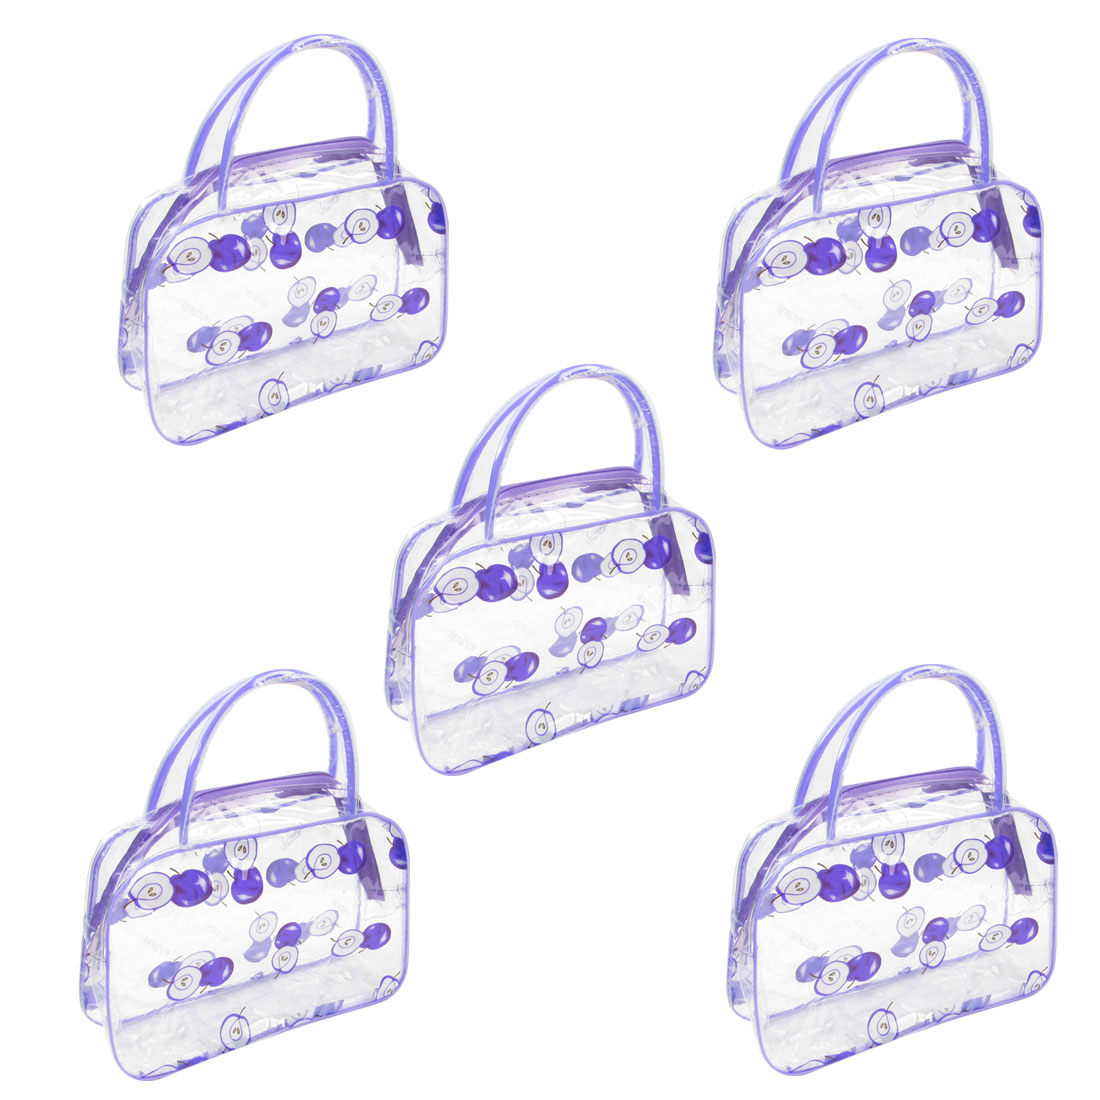 5 Pcs Travel Appple Pattern Makeup Cosmetic Bag Case Purple Clear for Lady